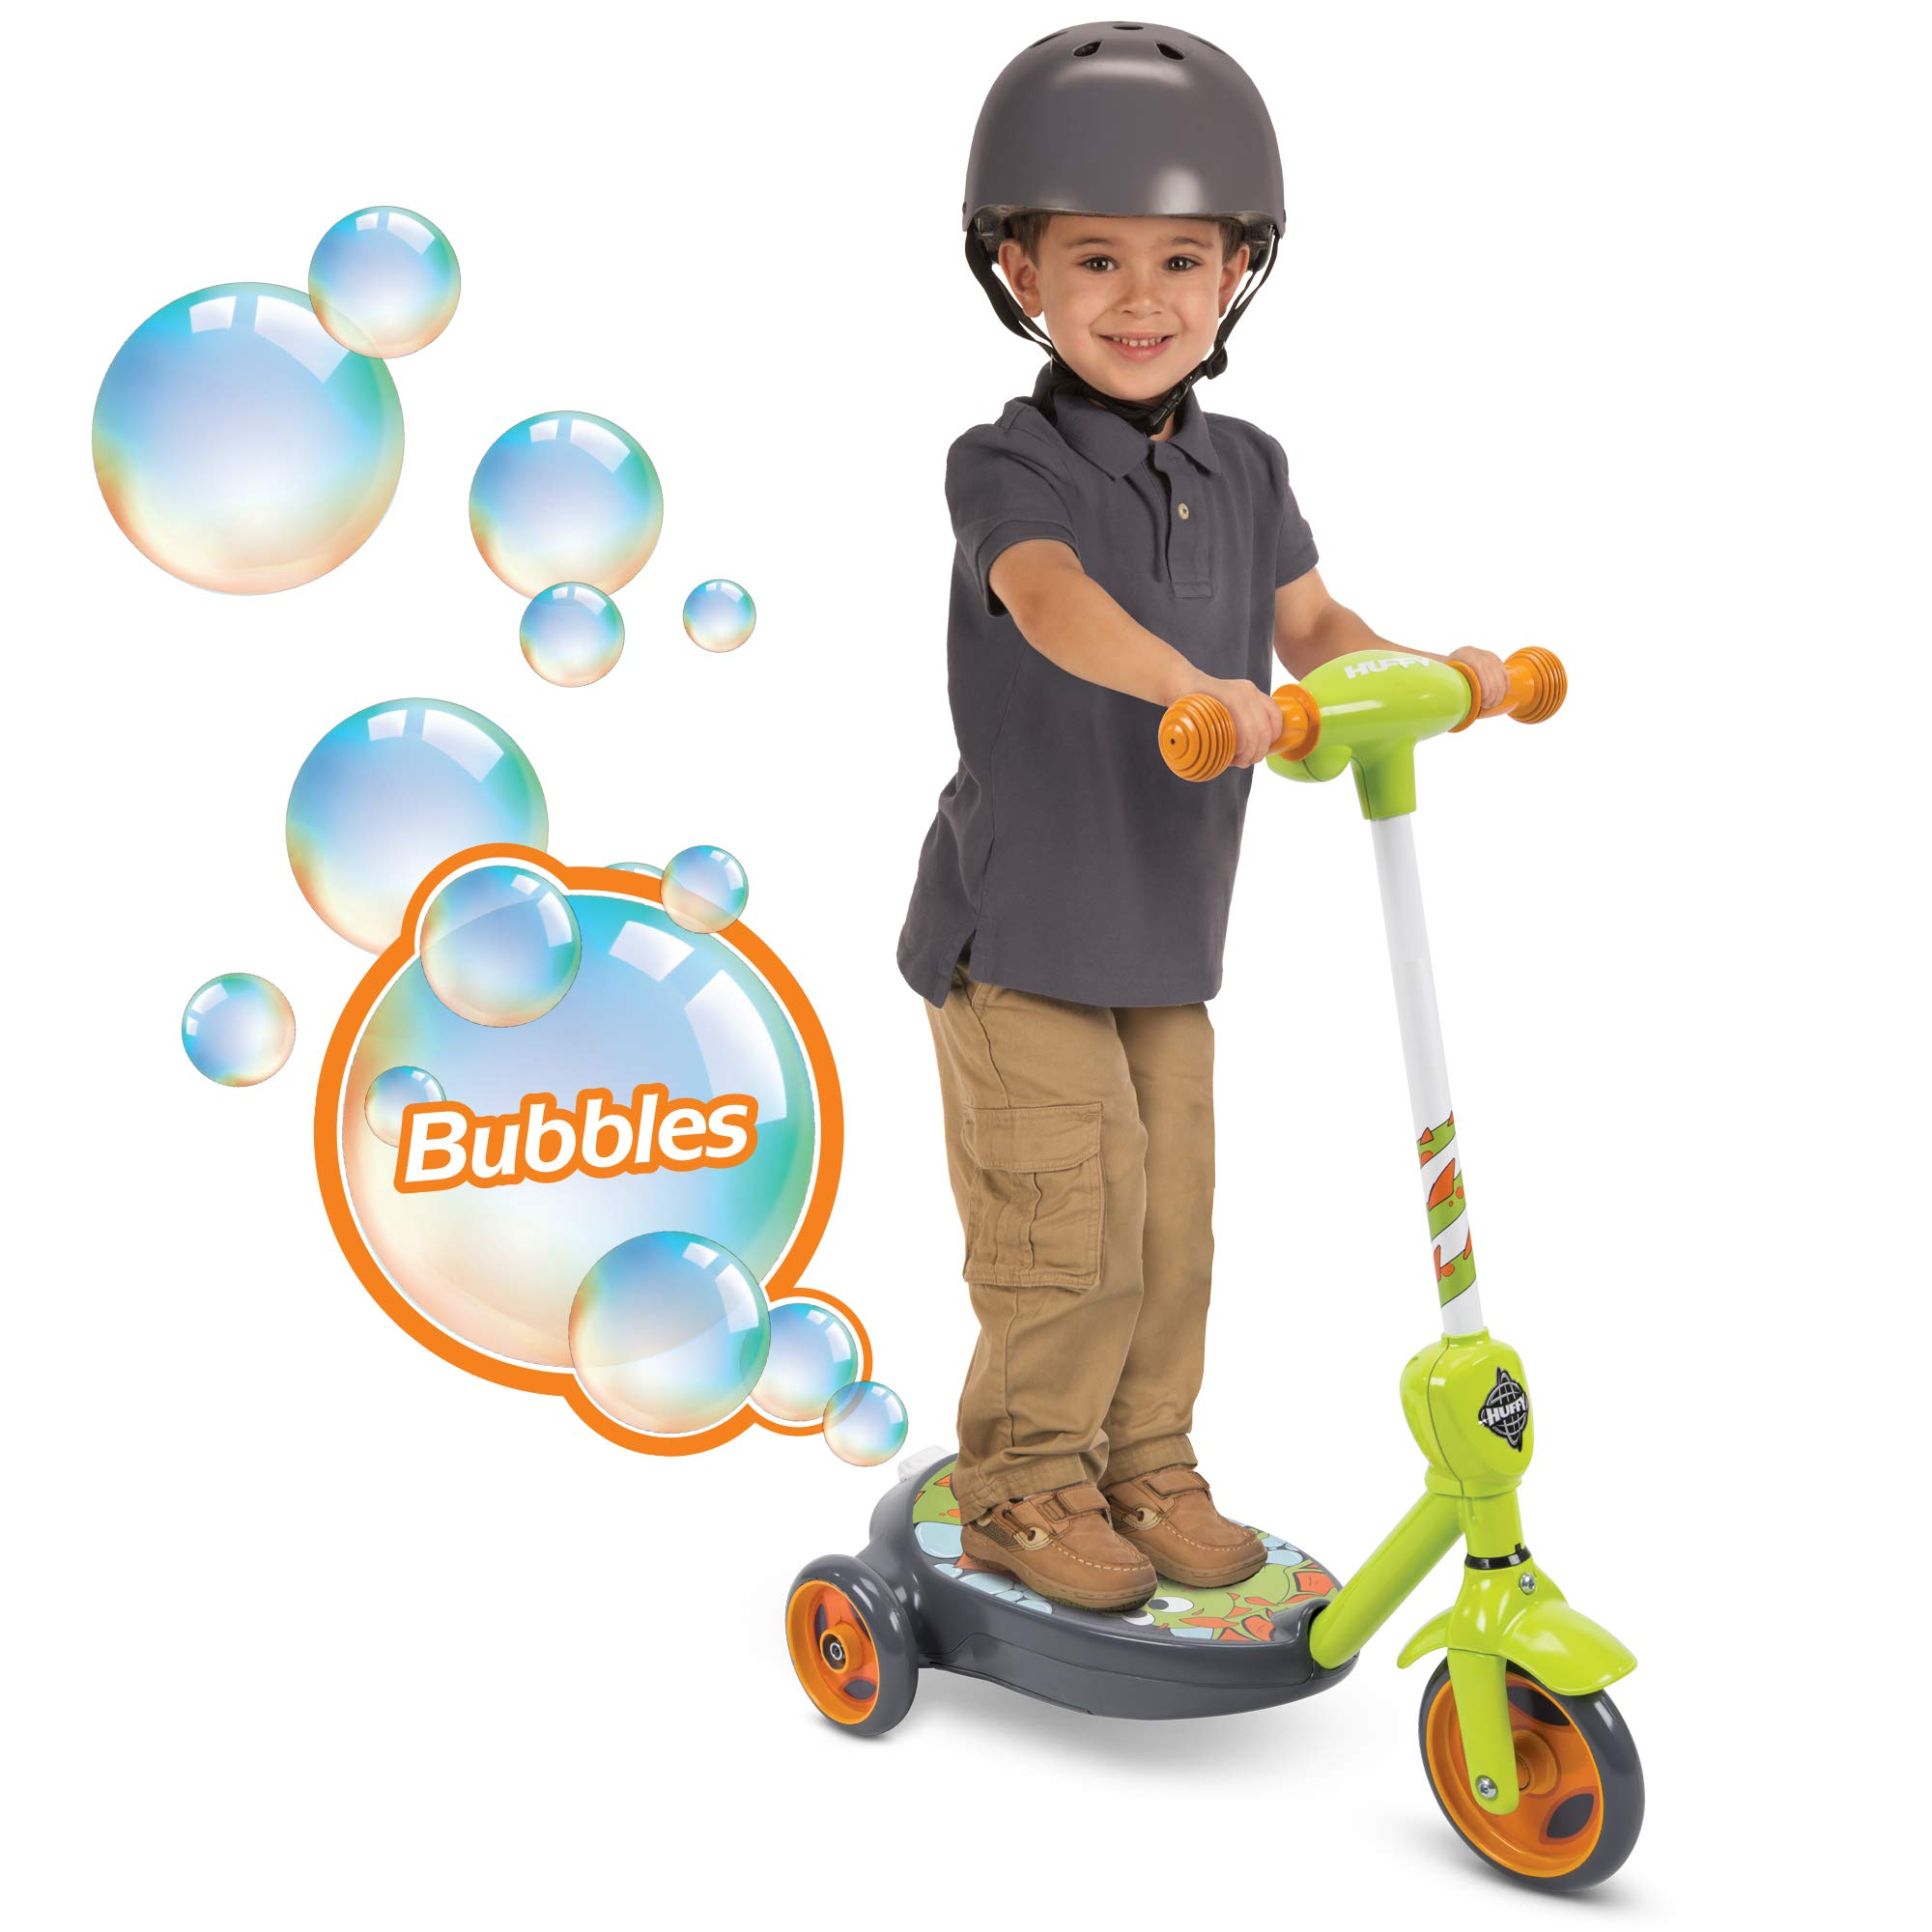 Huffy 18007P 6V 2 in 1 Bubble Scooter (Dragons) Toy, Green by Huffy